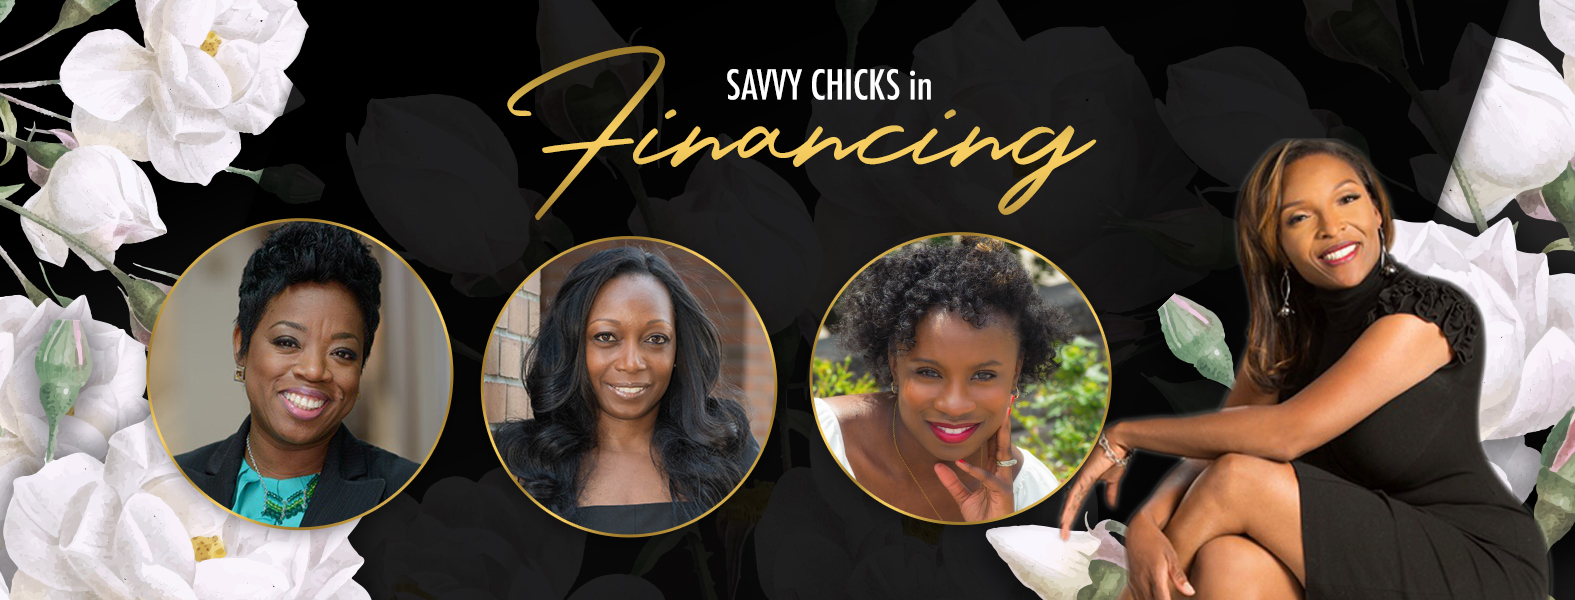 9:15 am - 10:30 amSavvy Chicks in Financing - How to Invest in Stocks including Real Estate Stock, Joining Investment clubs, Planning for Retirement, Staying Compliant with the IRS, Business Expenses vs Personal Expenses.Q & AGuest Panelists:Gwendolyn Shaw | Country FinancialCassandra Cummings | Stocks & Stilettos SocietyAtiya Brown | The Savvy Accountant, Live Financially SavvyModerator:La Shandria Sanderson,|Managing Broker at Redfin